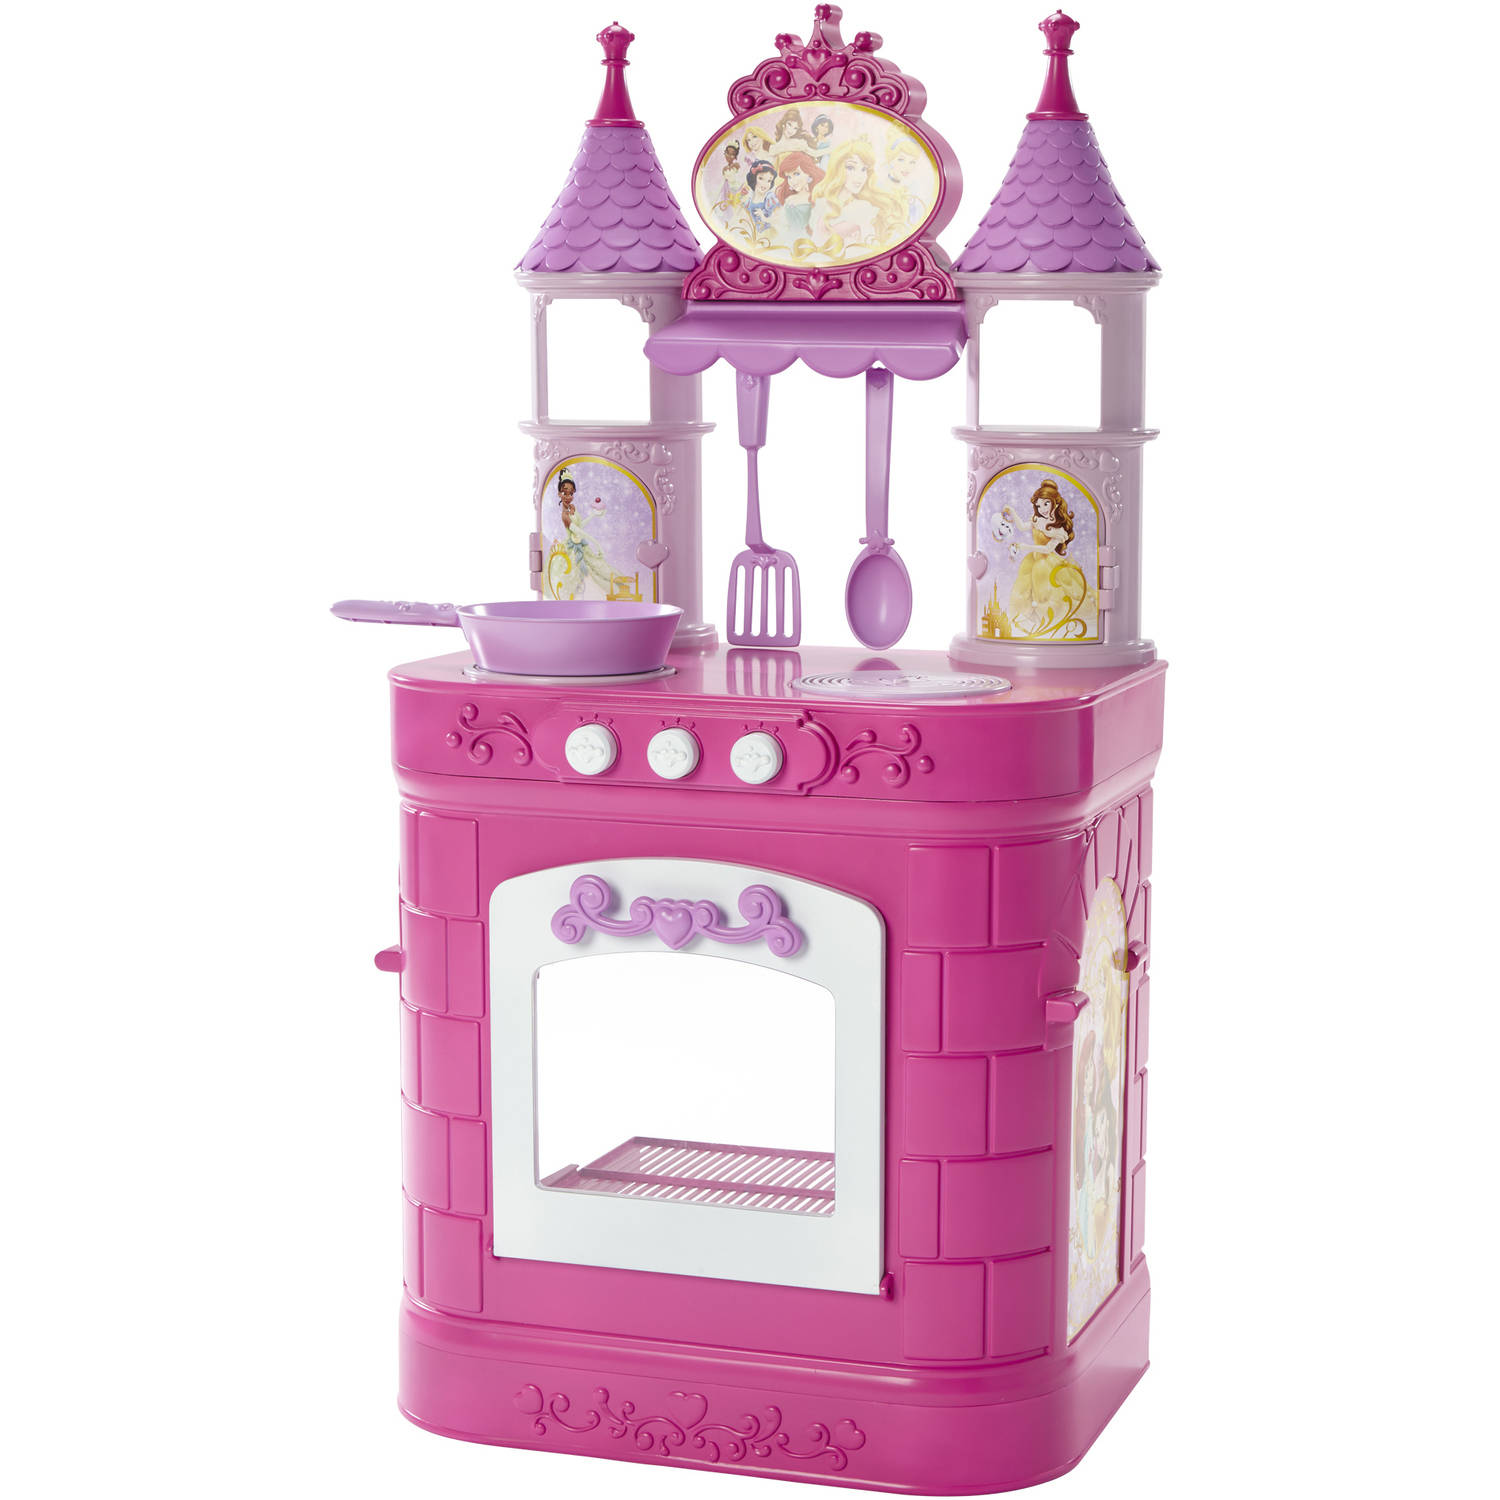 Disney Princess Magical Play Kitchen by Jakks Pacific